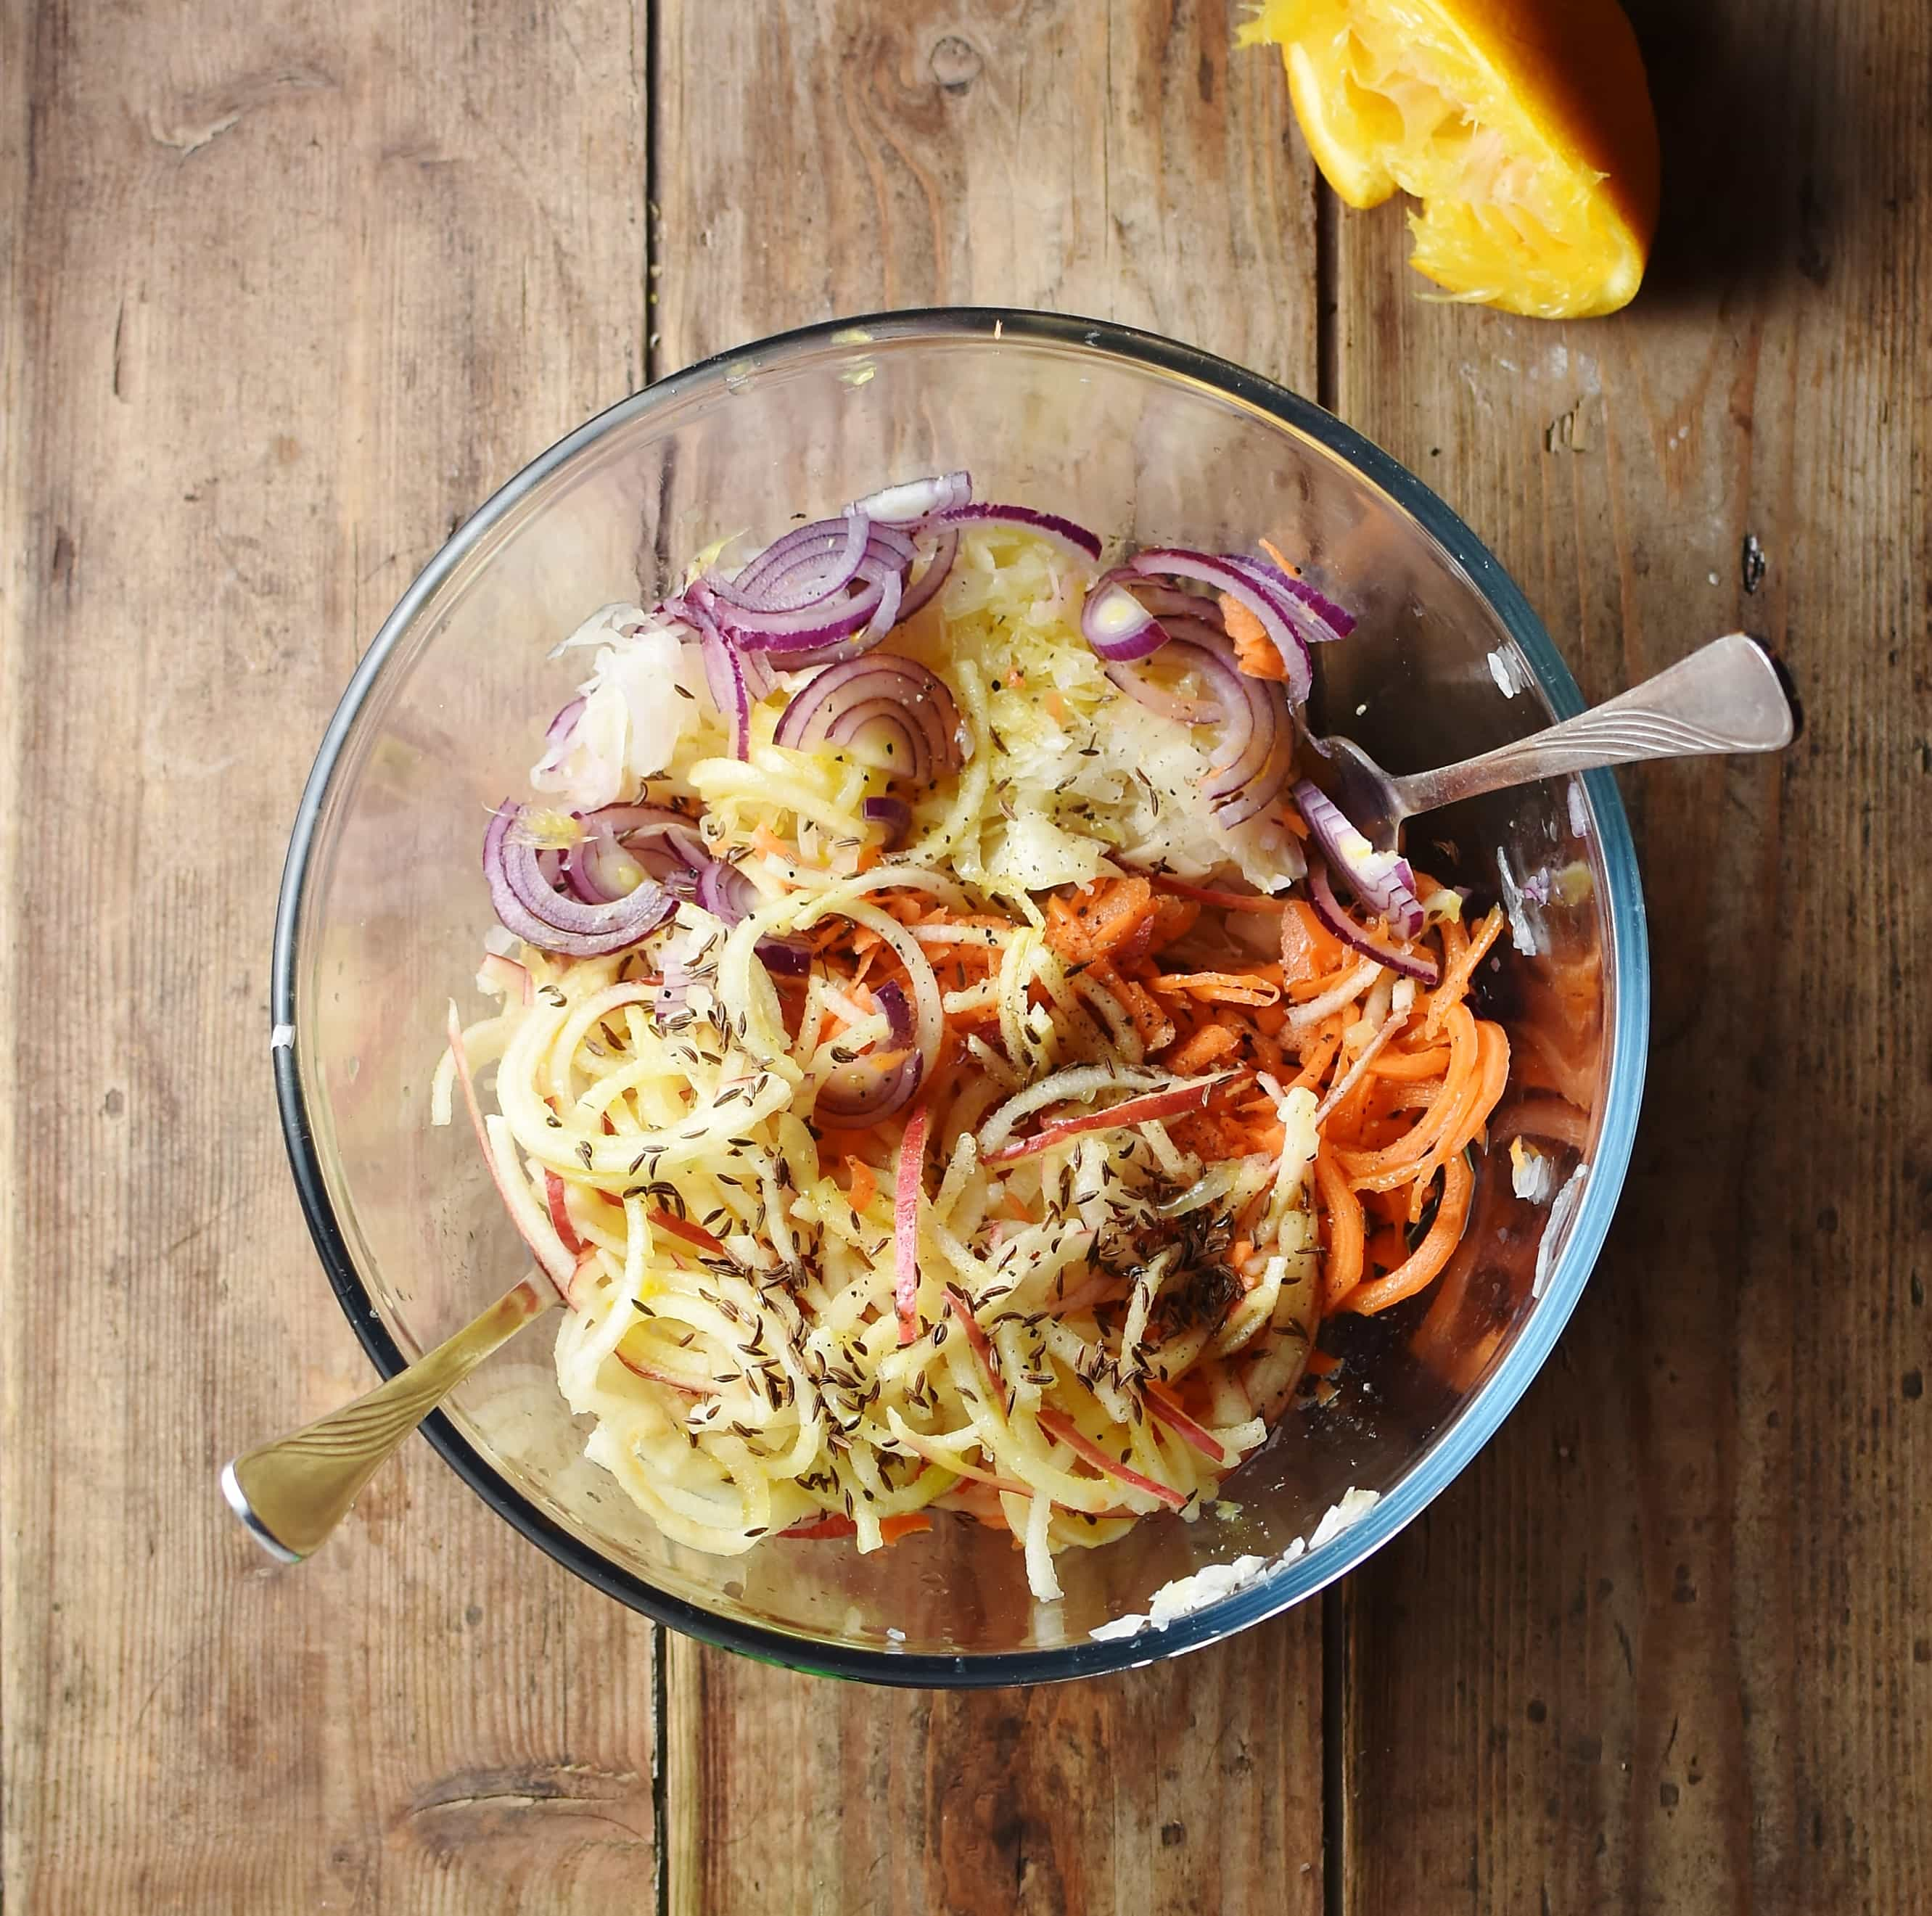 Spiralized carrot and apple, sliced red onion, spices and sauerkraut in mixing bowl with 2 forks.